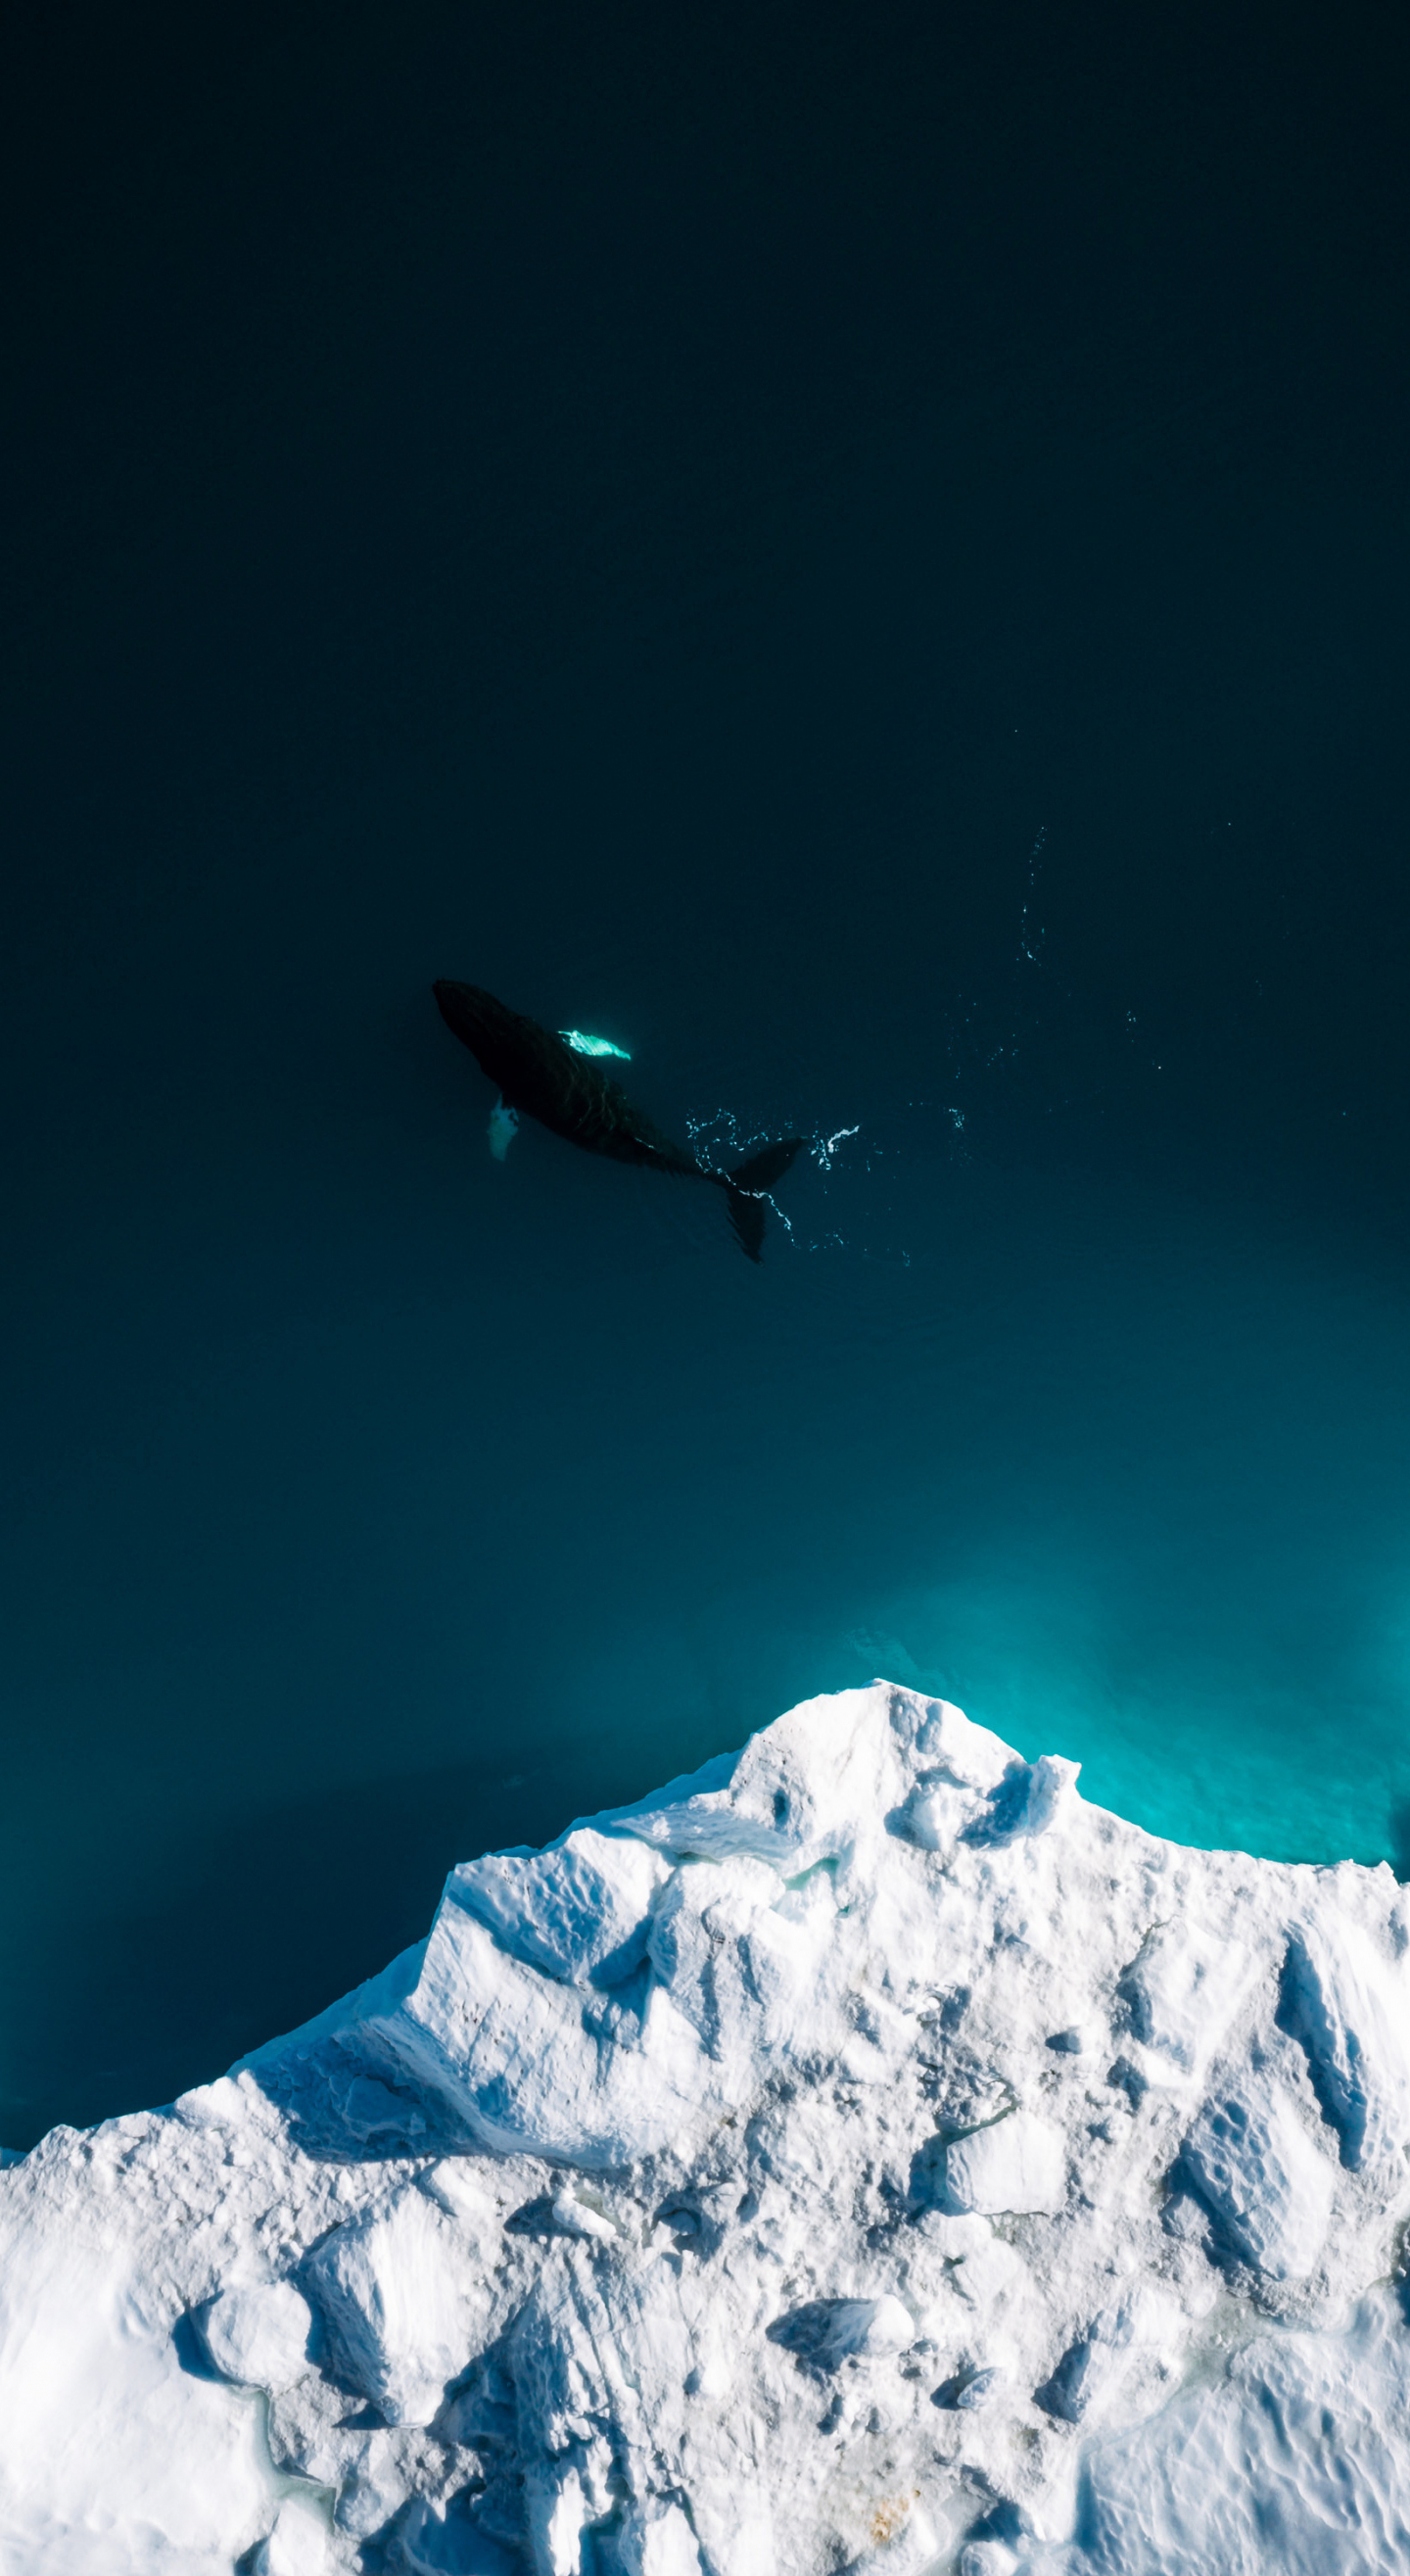 Download 1440x2630 Wallpaper Aerial Shot Iceberg Whale